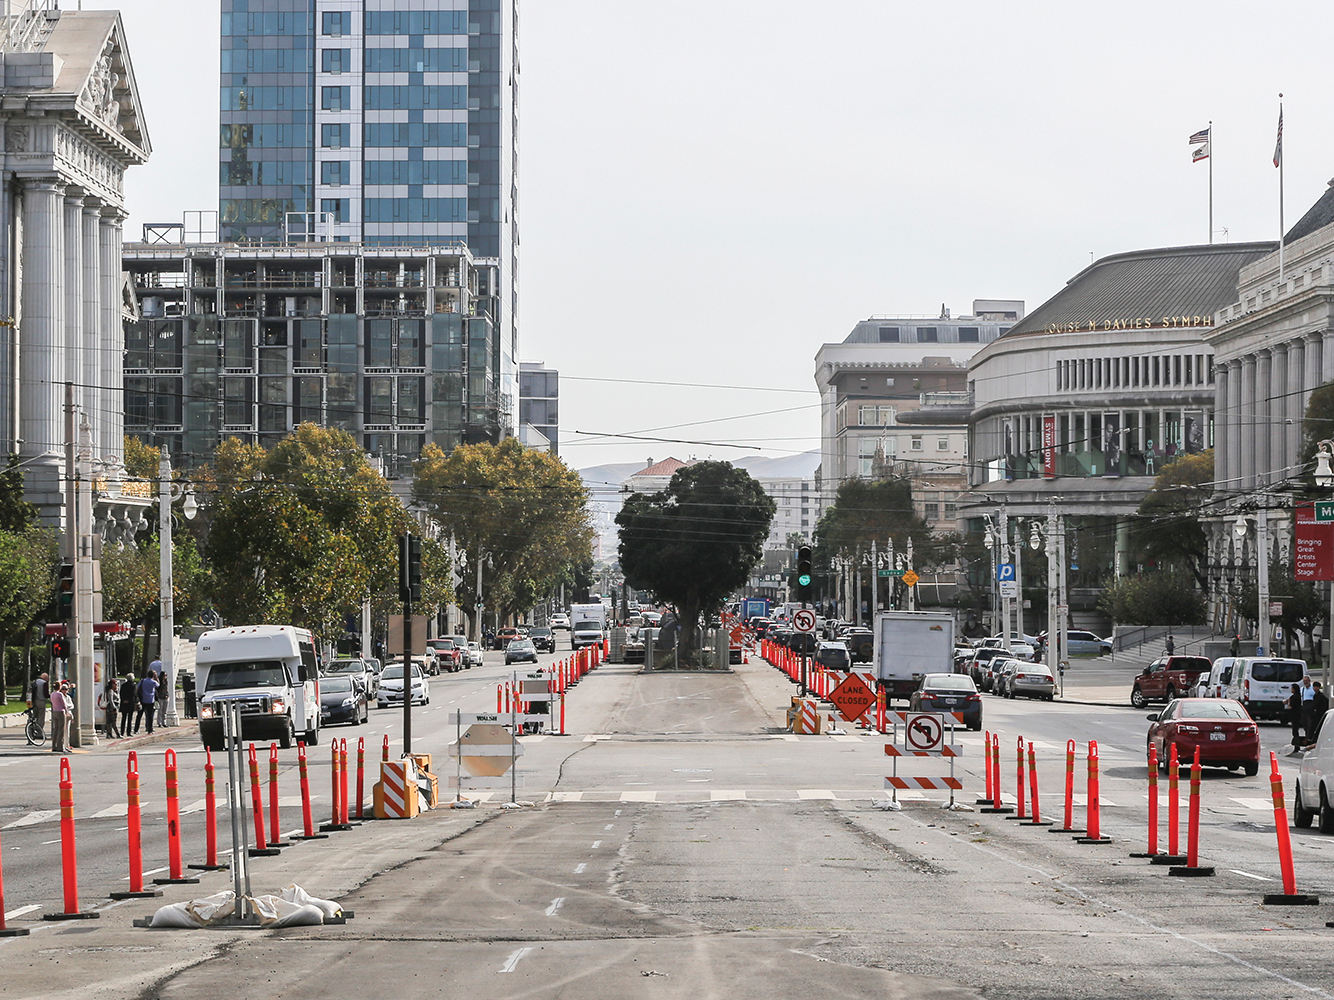 The SFMTA said it's exploring new options to speed up the Van Ness Bus Rapid Transit project's two-year delay. (Mira Laing/Special to S.F. Examiner)